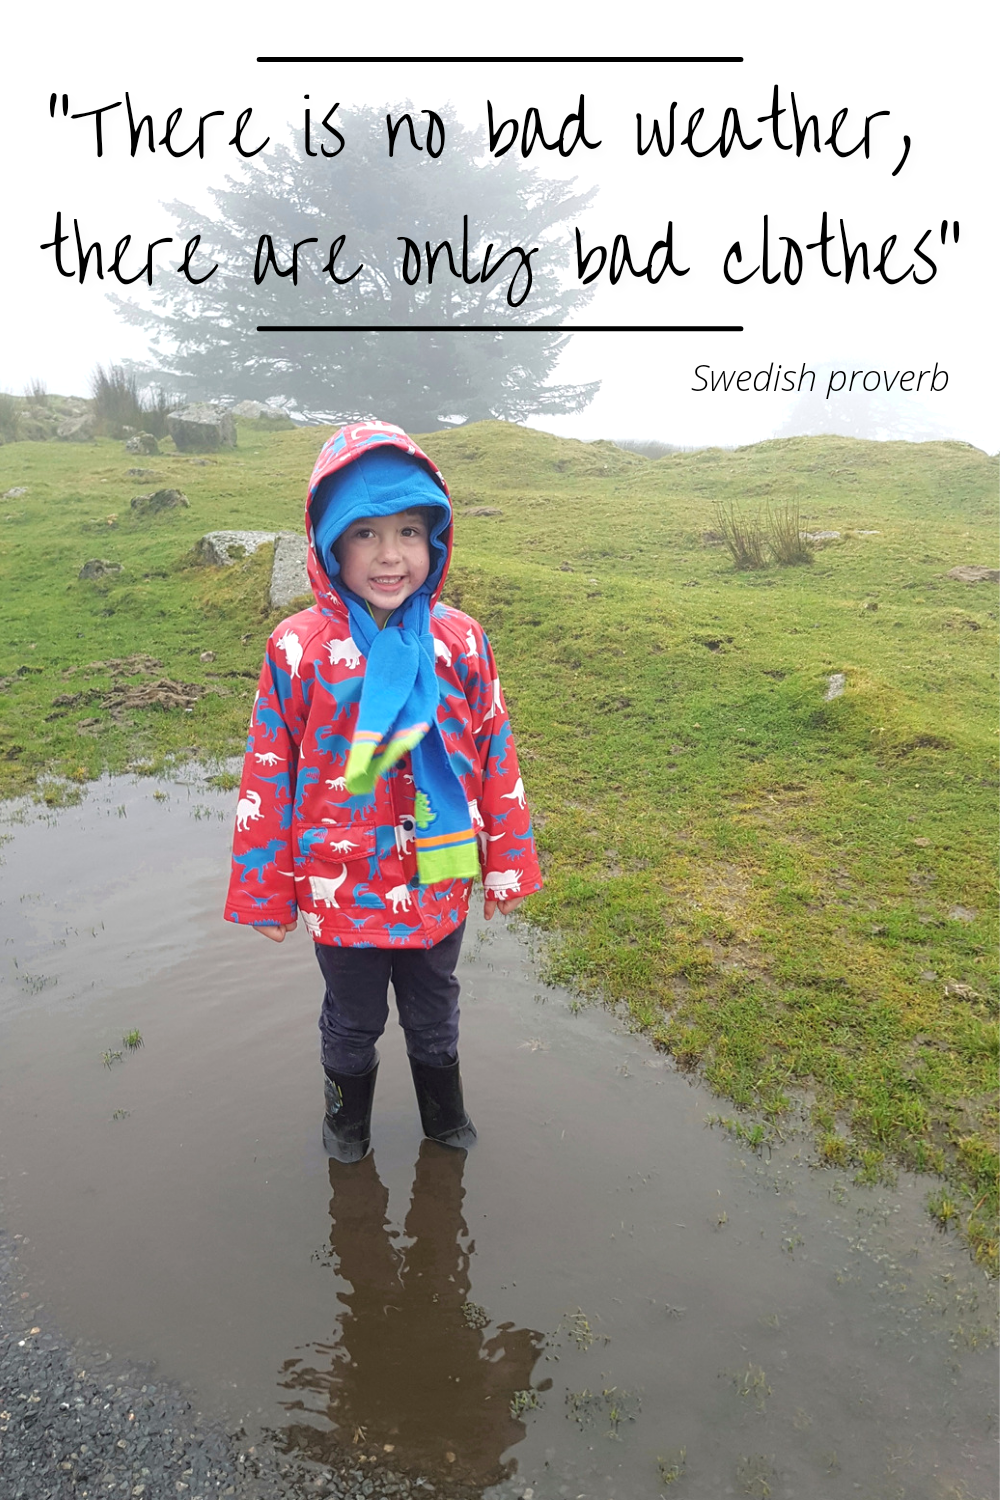 Child outdoors in fog standing in puddle